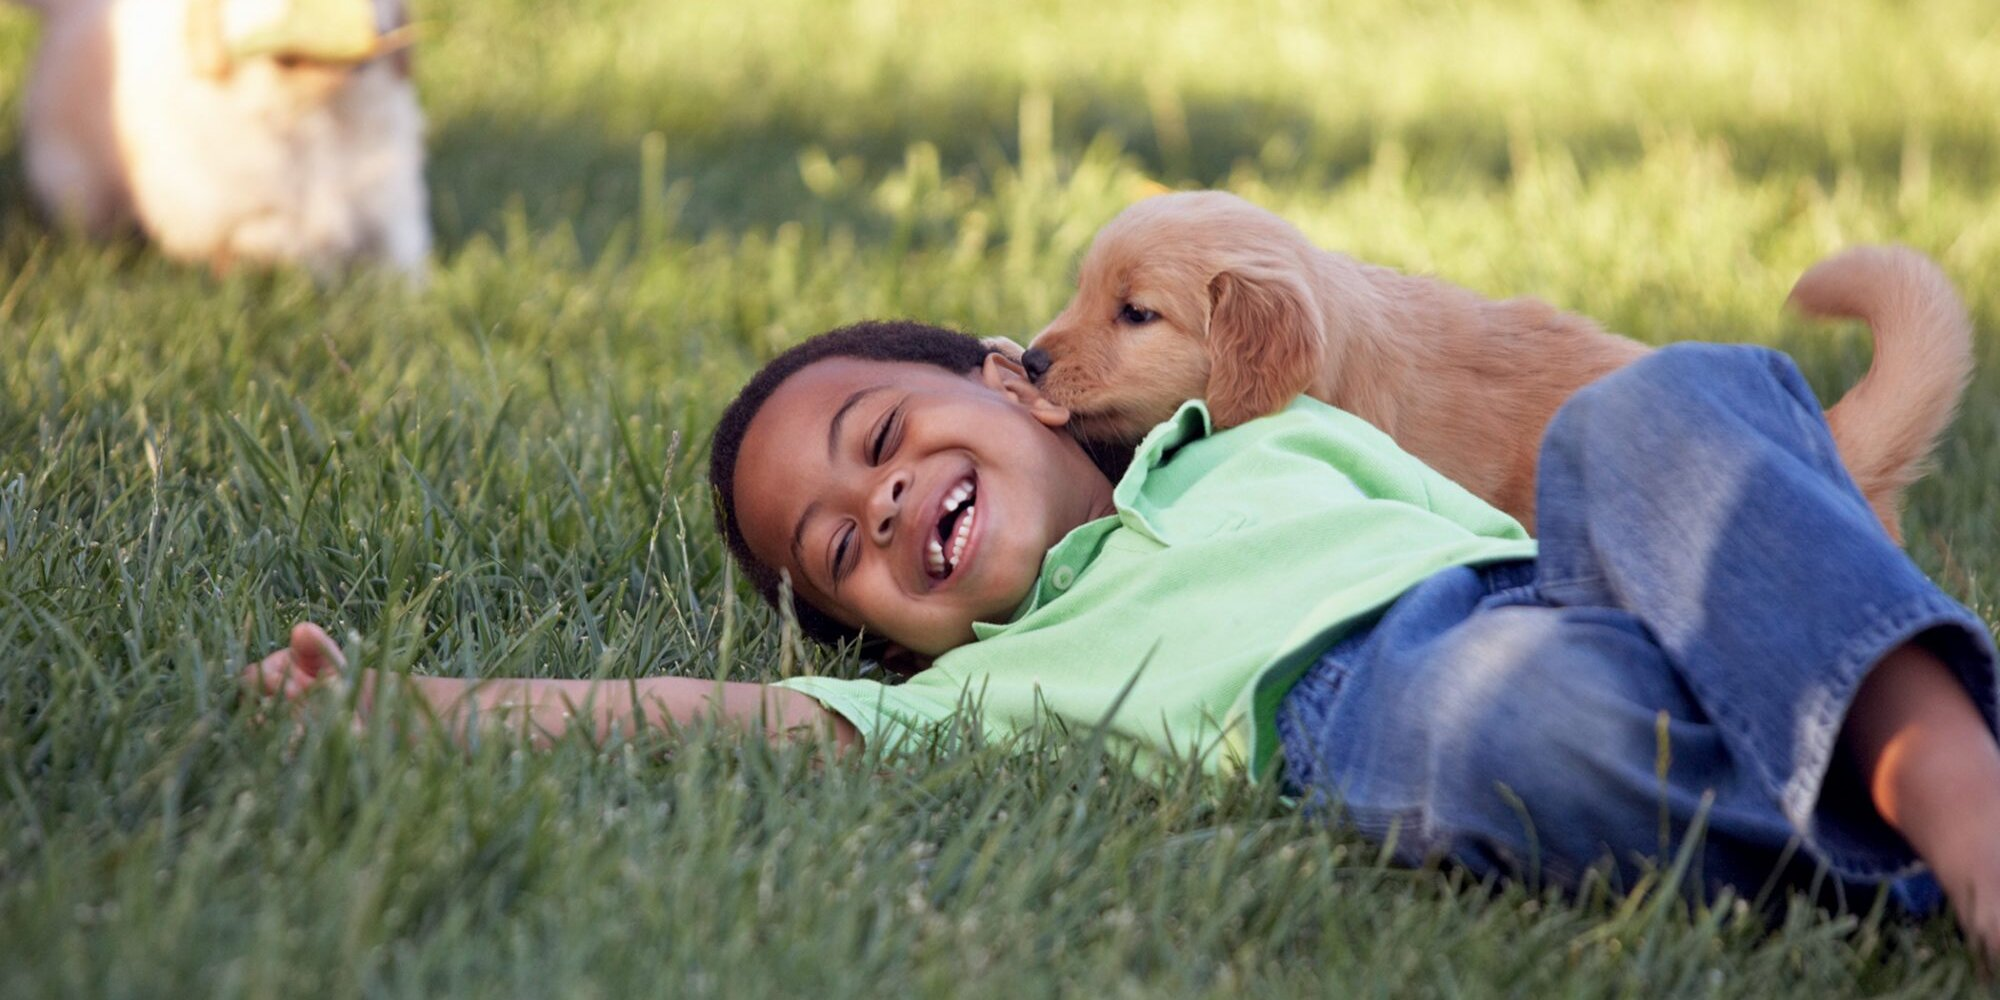 A New Study Suggests Puppies Are Born to Connect With Us